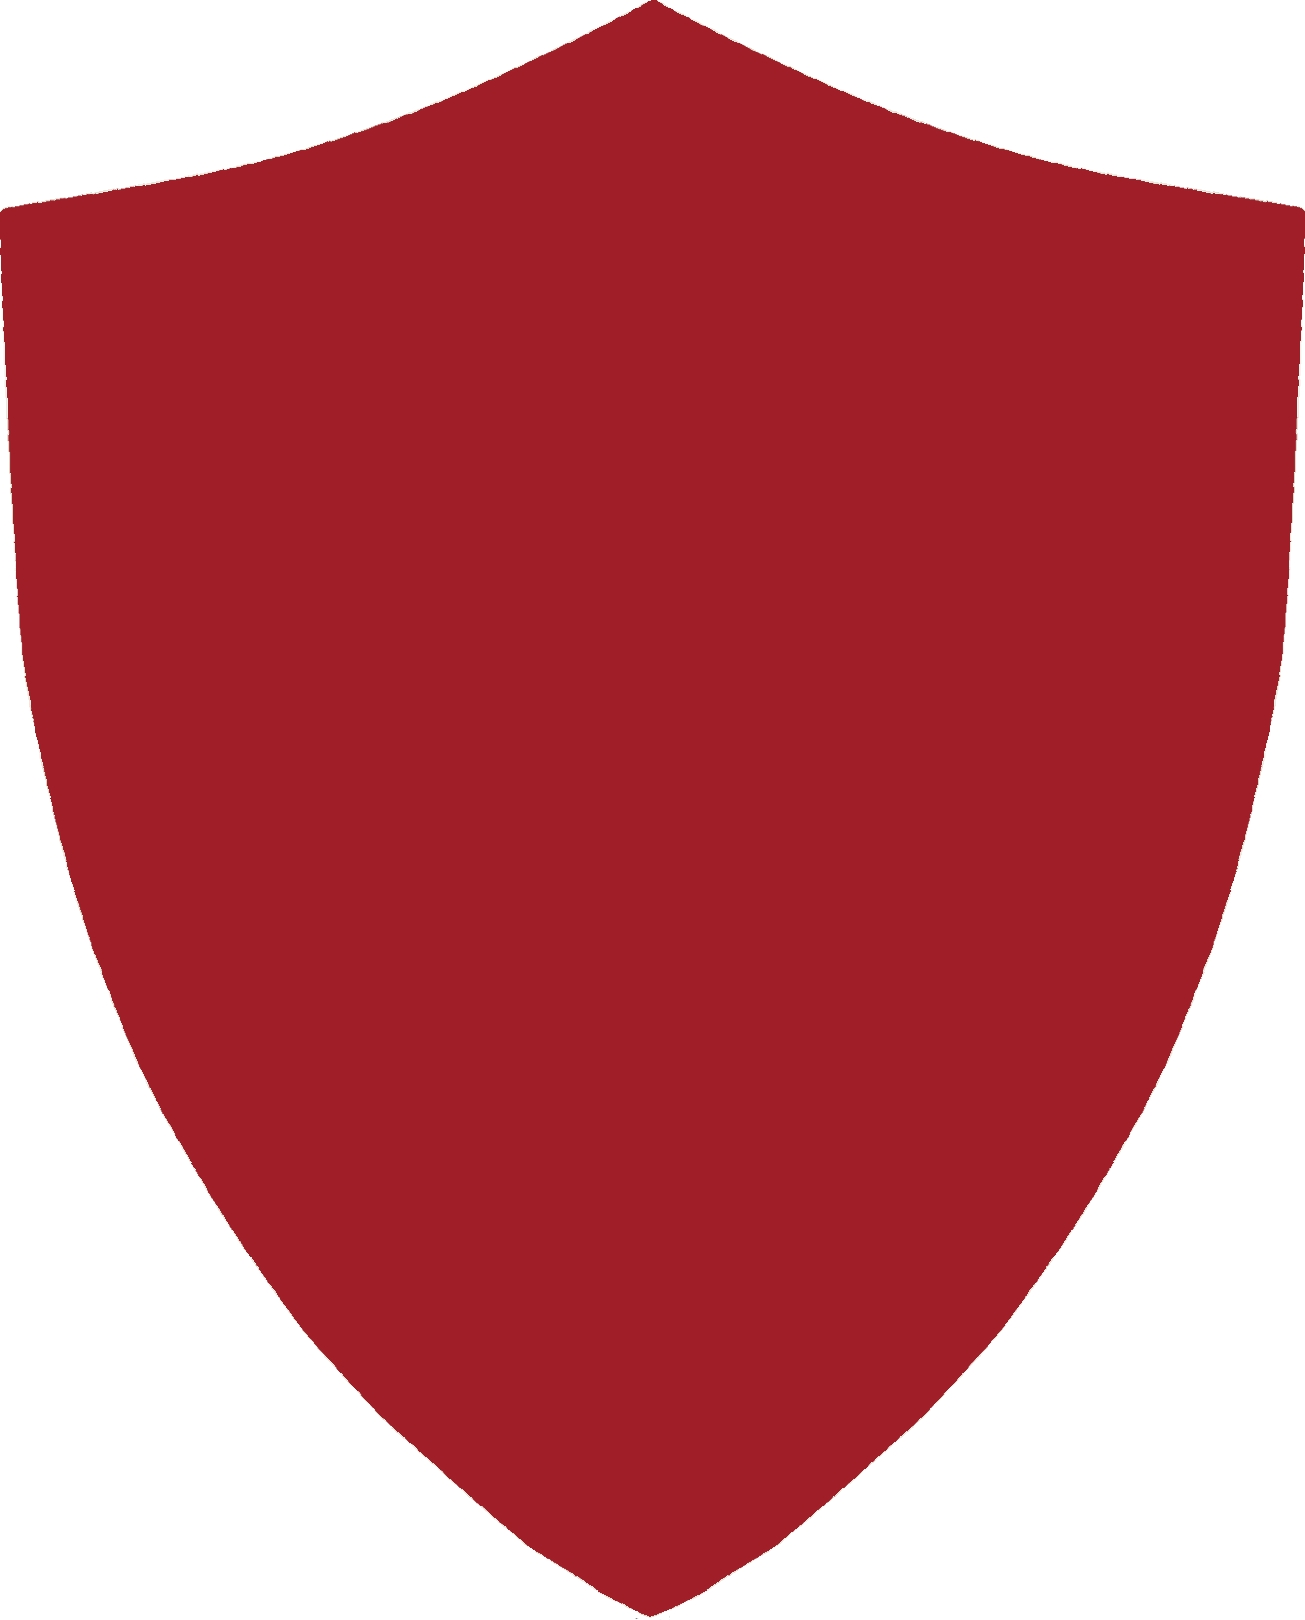 Vector clipart shield. Inset mirror red free